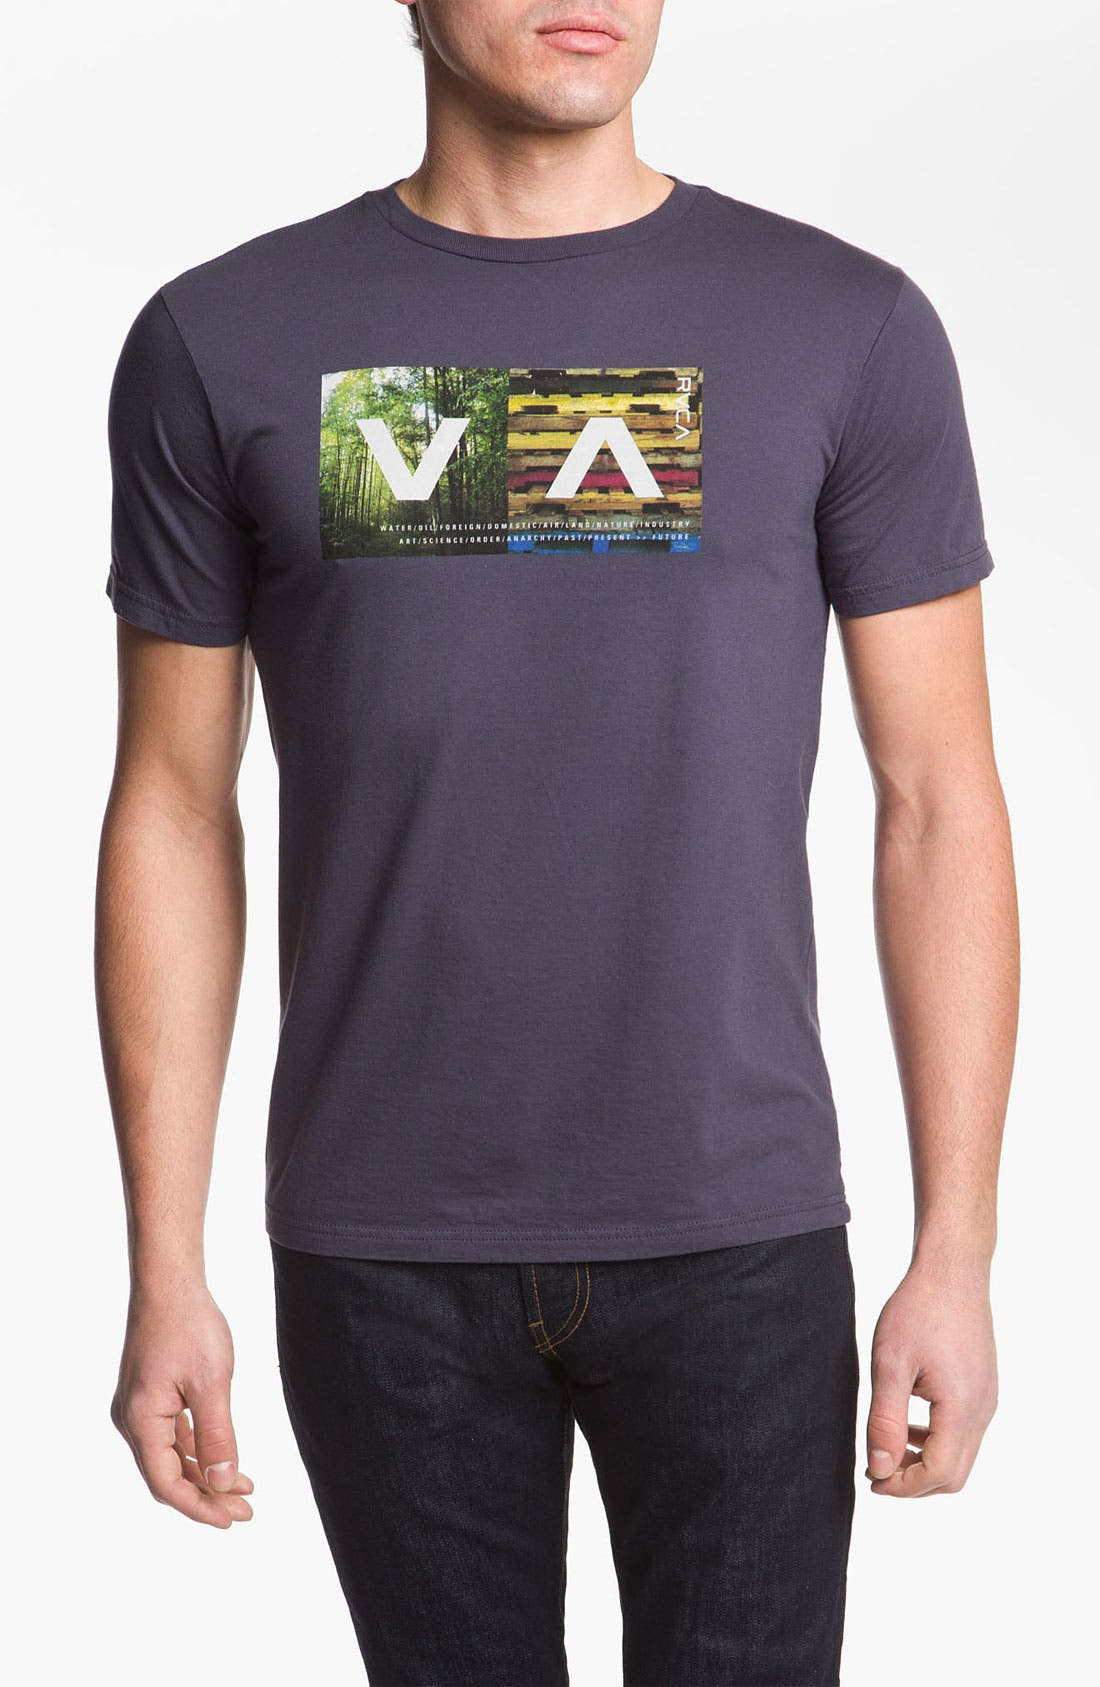 Alternate Image 1 Selected - RVCA 'The Woods' Graphic T-Shirt